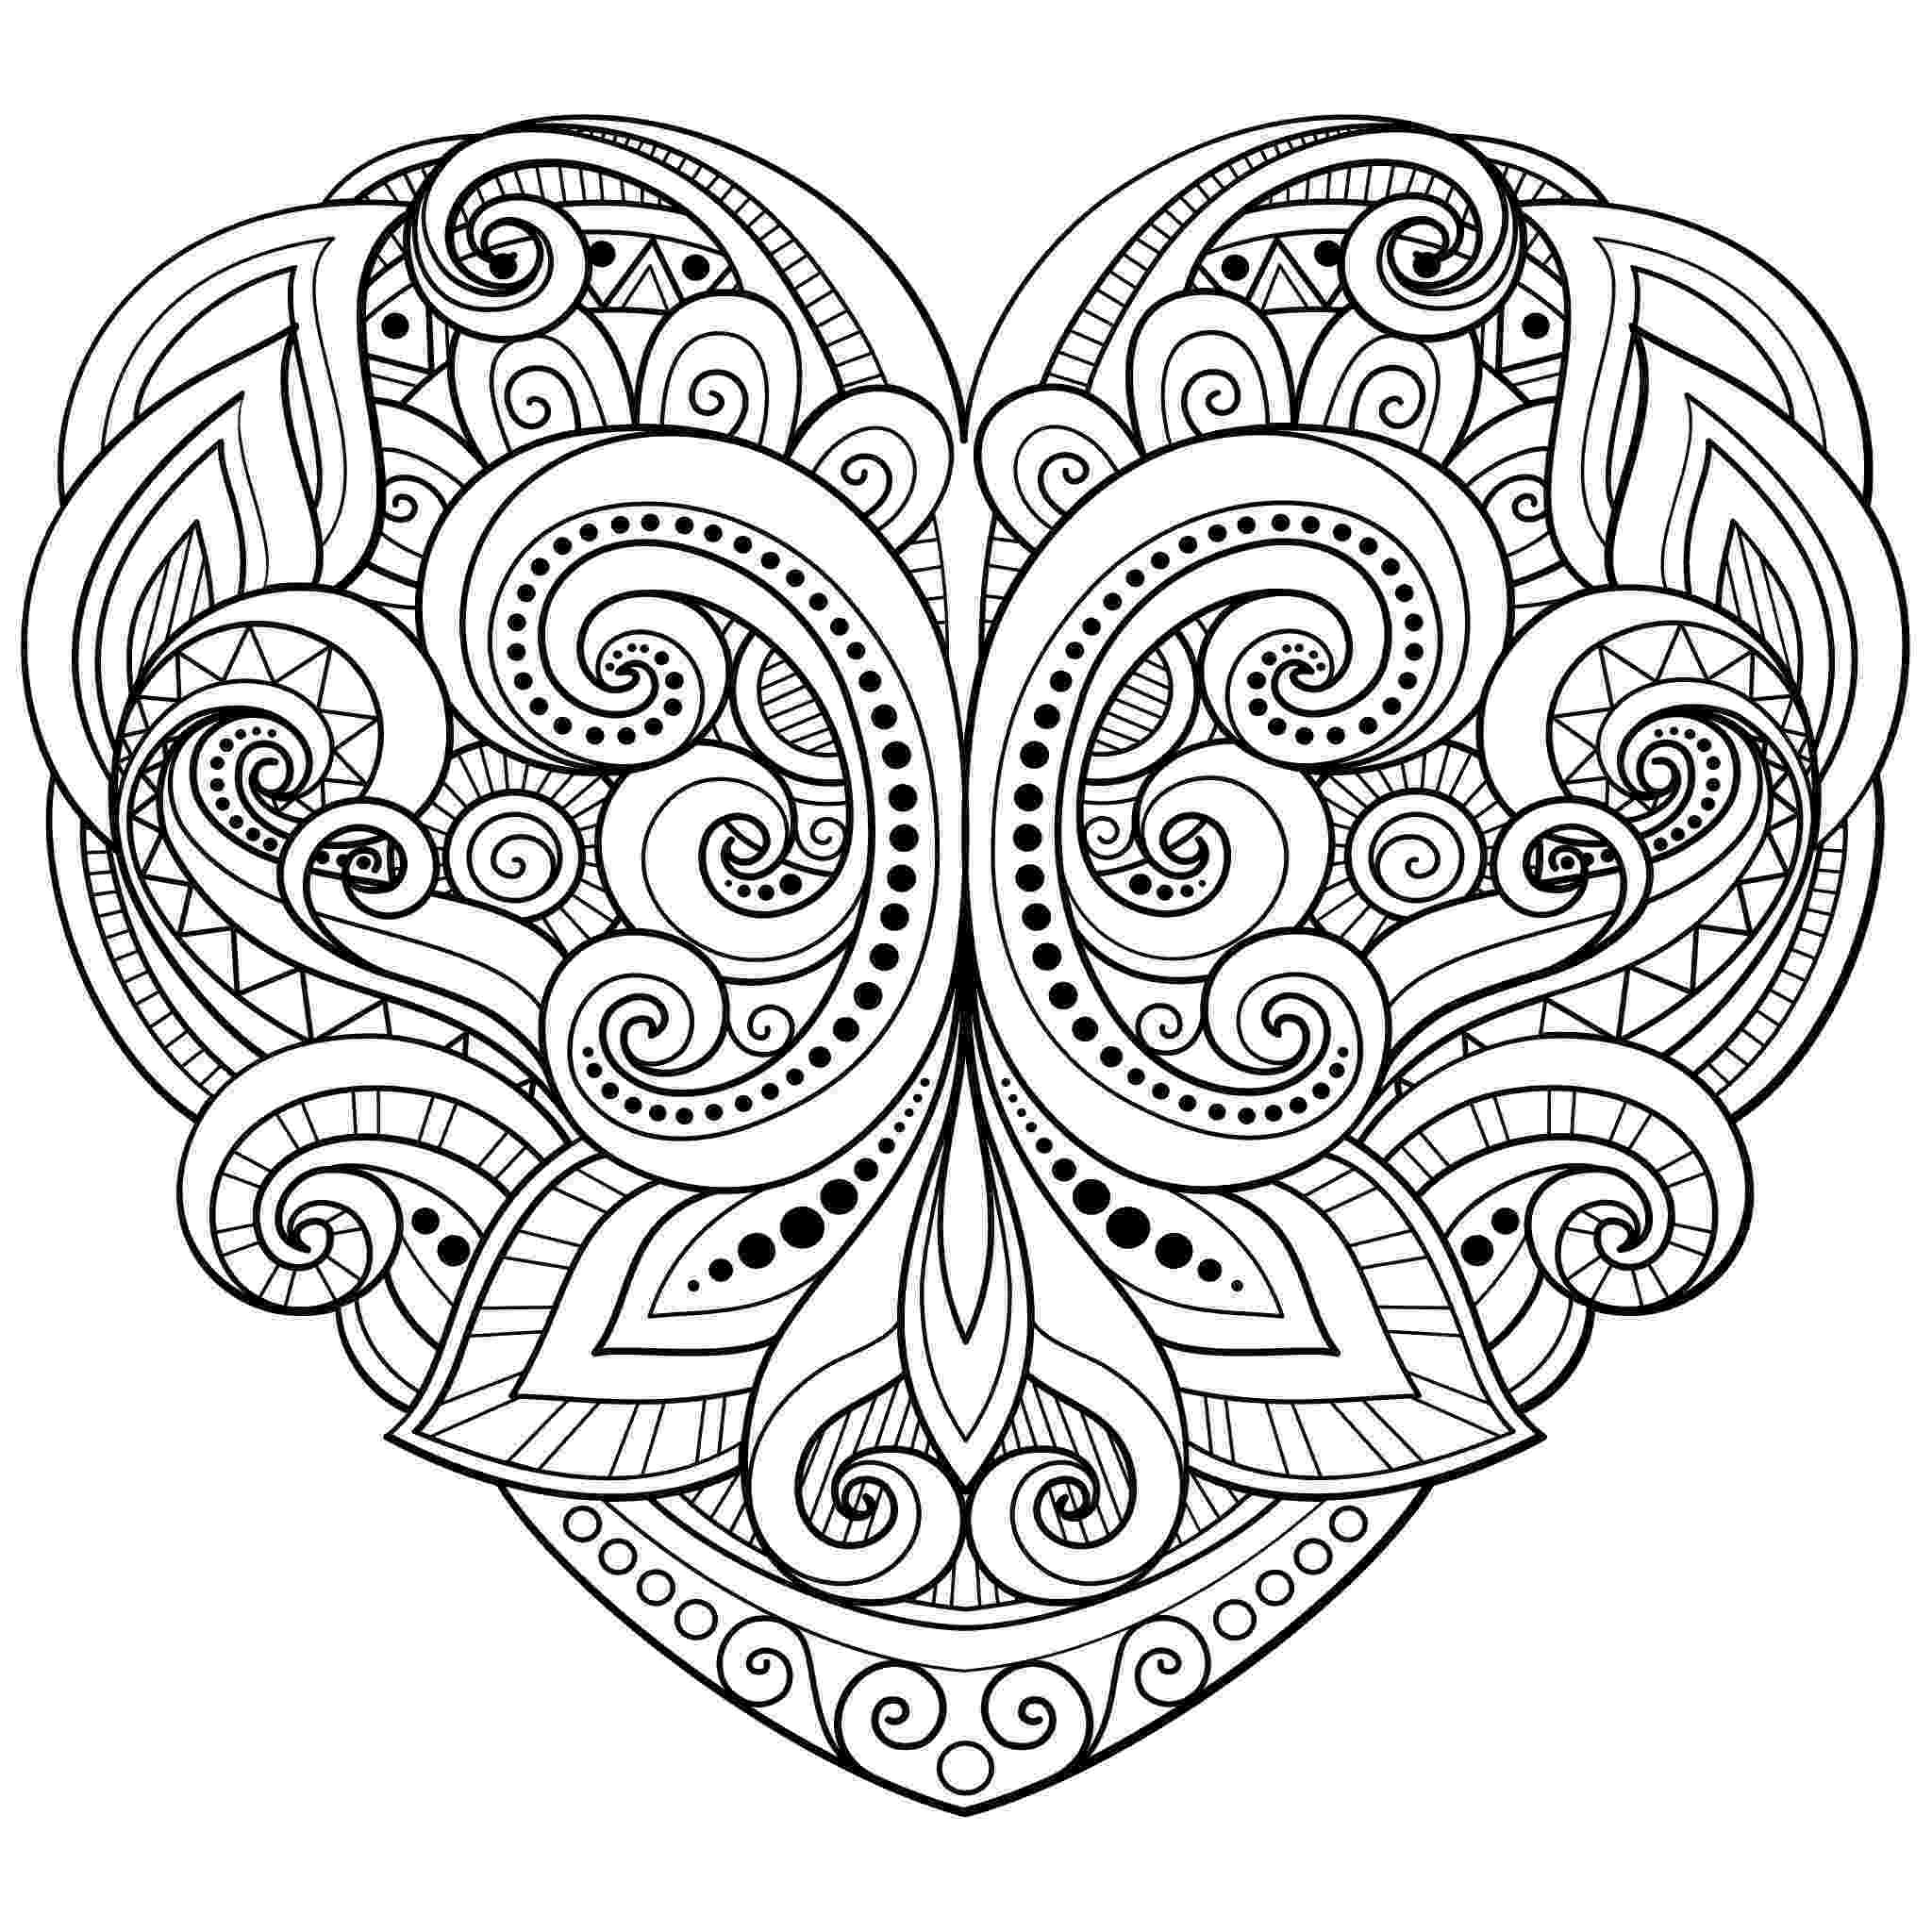 coloring pages heart love heart coloring page heart coloring pages love pages coloring heart